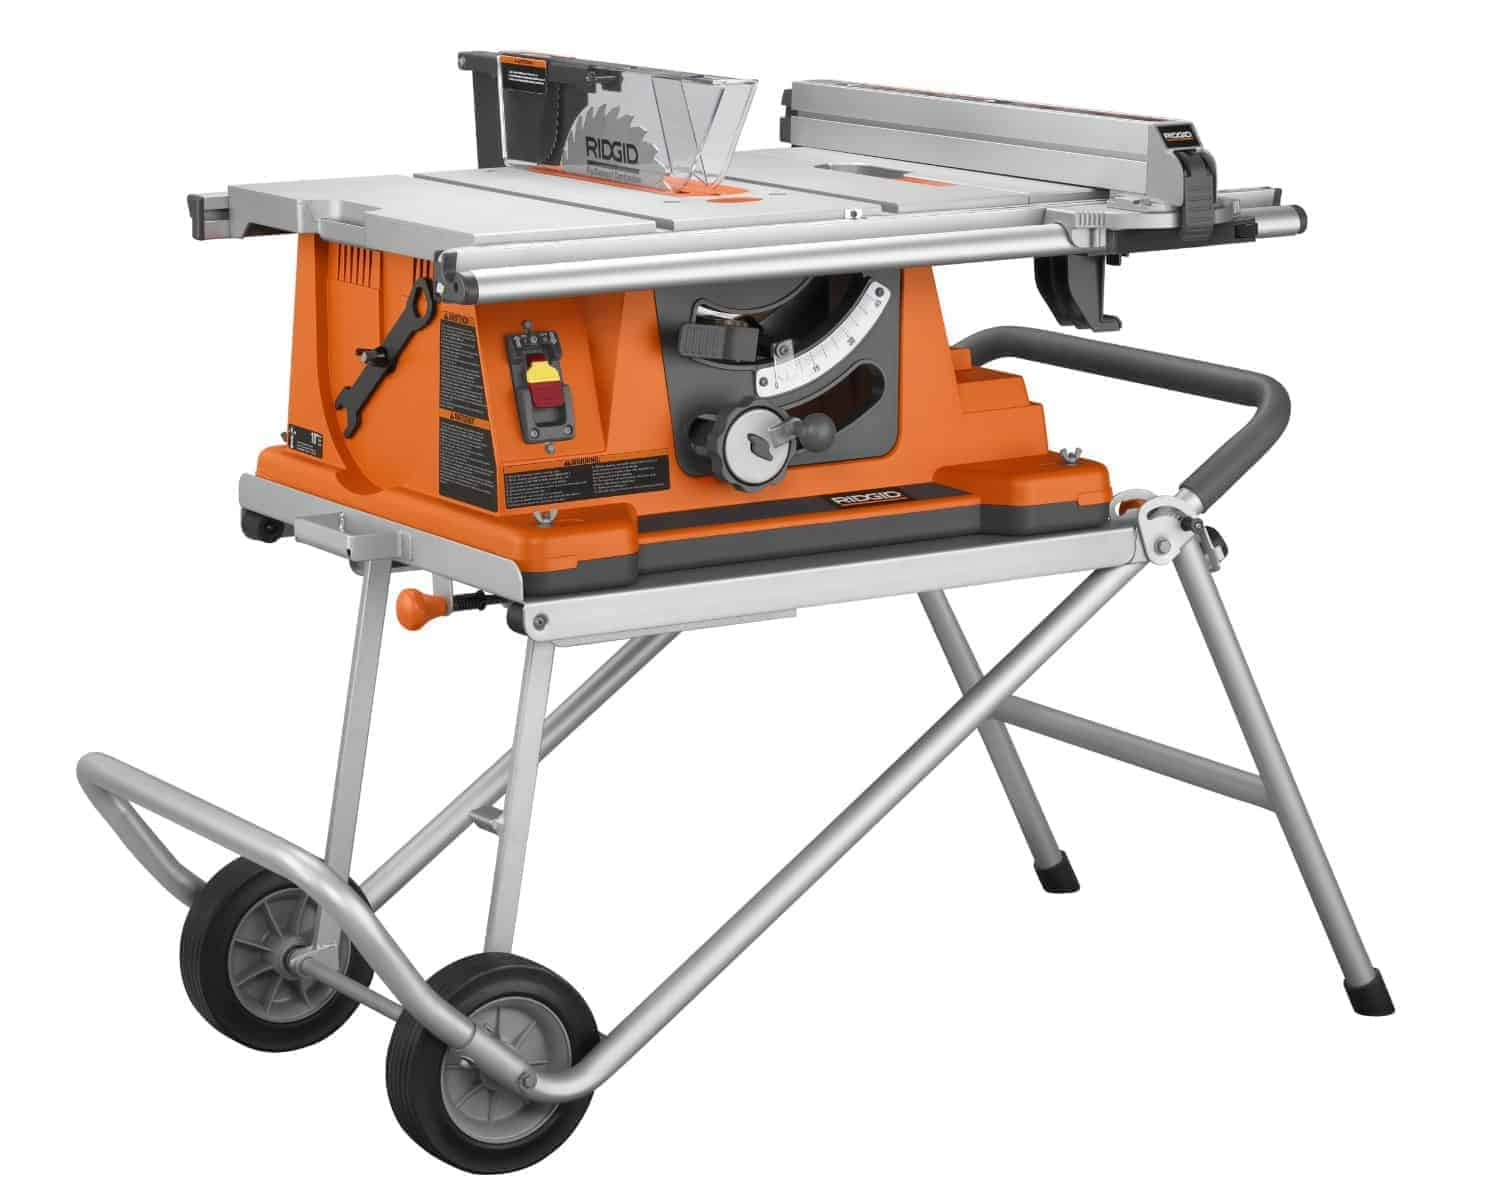 Ridgid R4510 Heavy Duty Table Saw Review